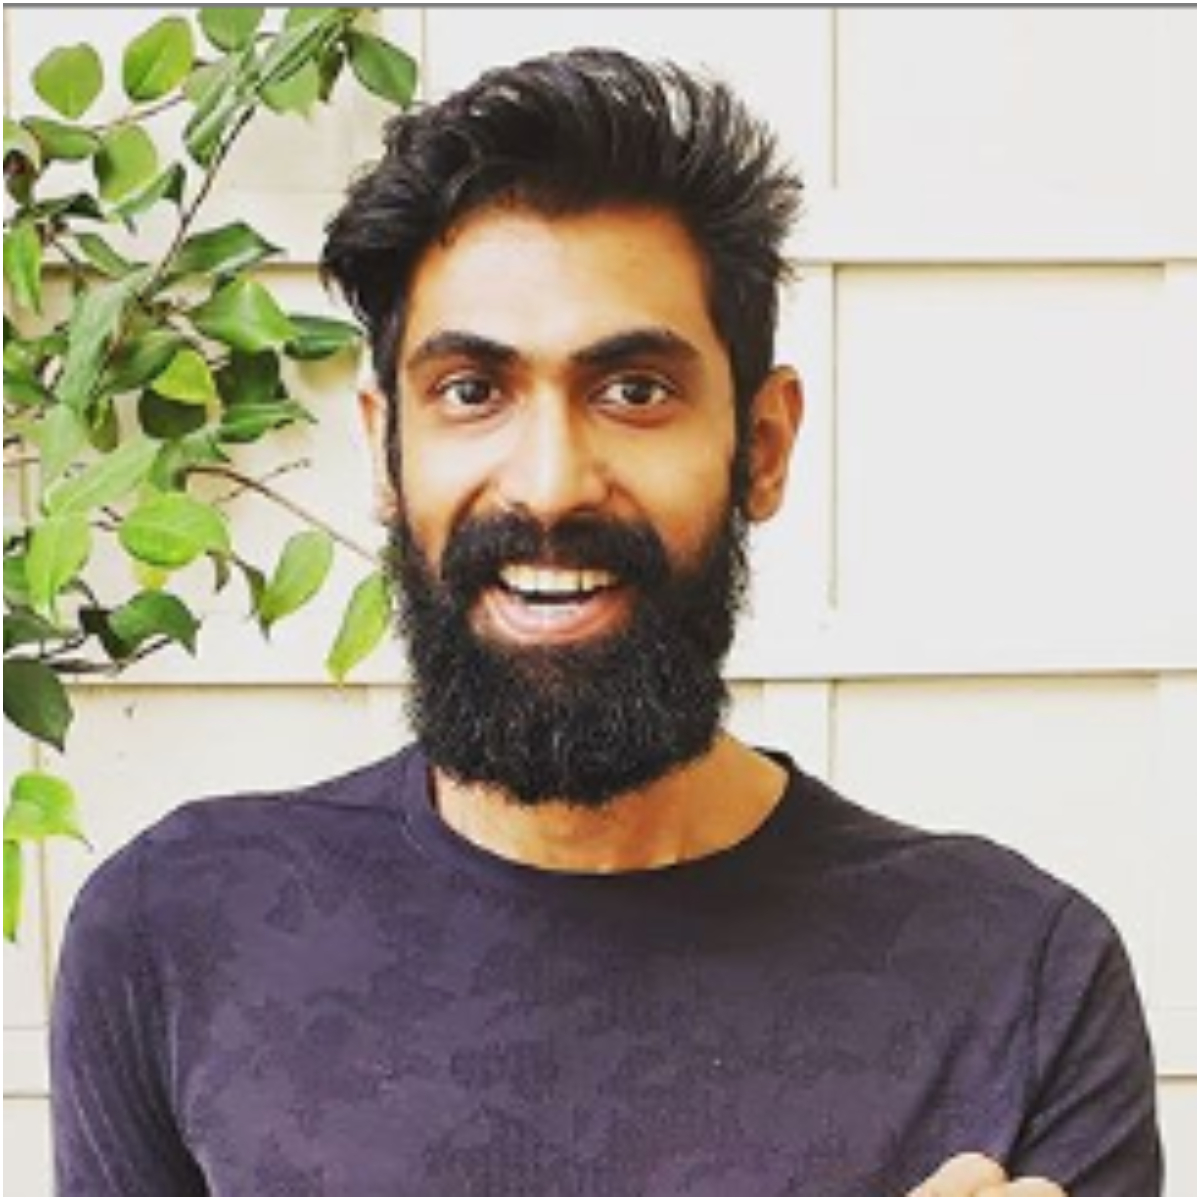 Rana Daggubati's latest picture worries fans and the star gets flooded with questions about his health